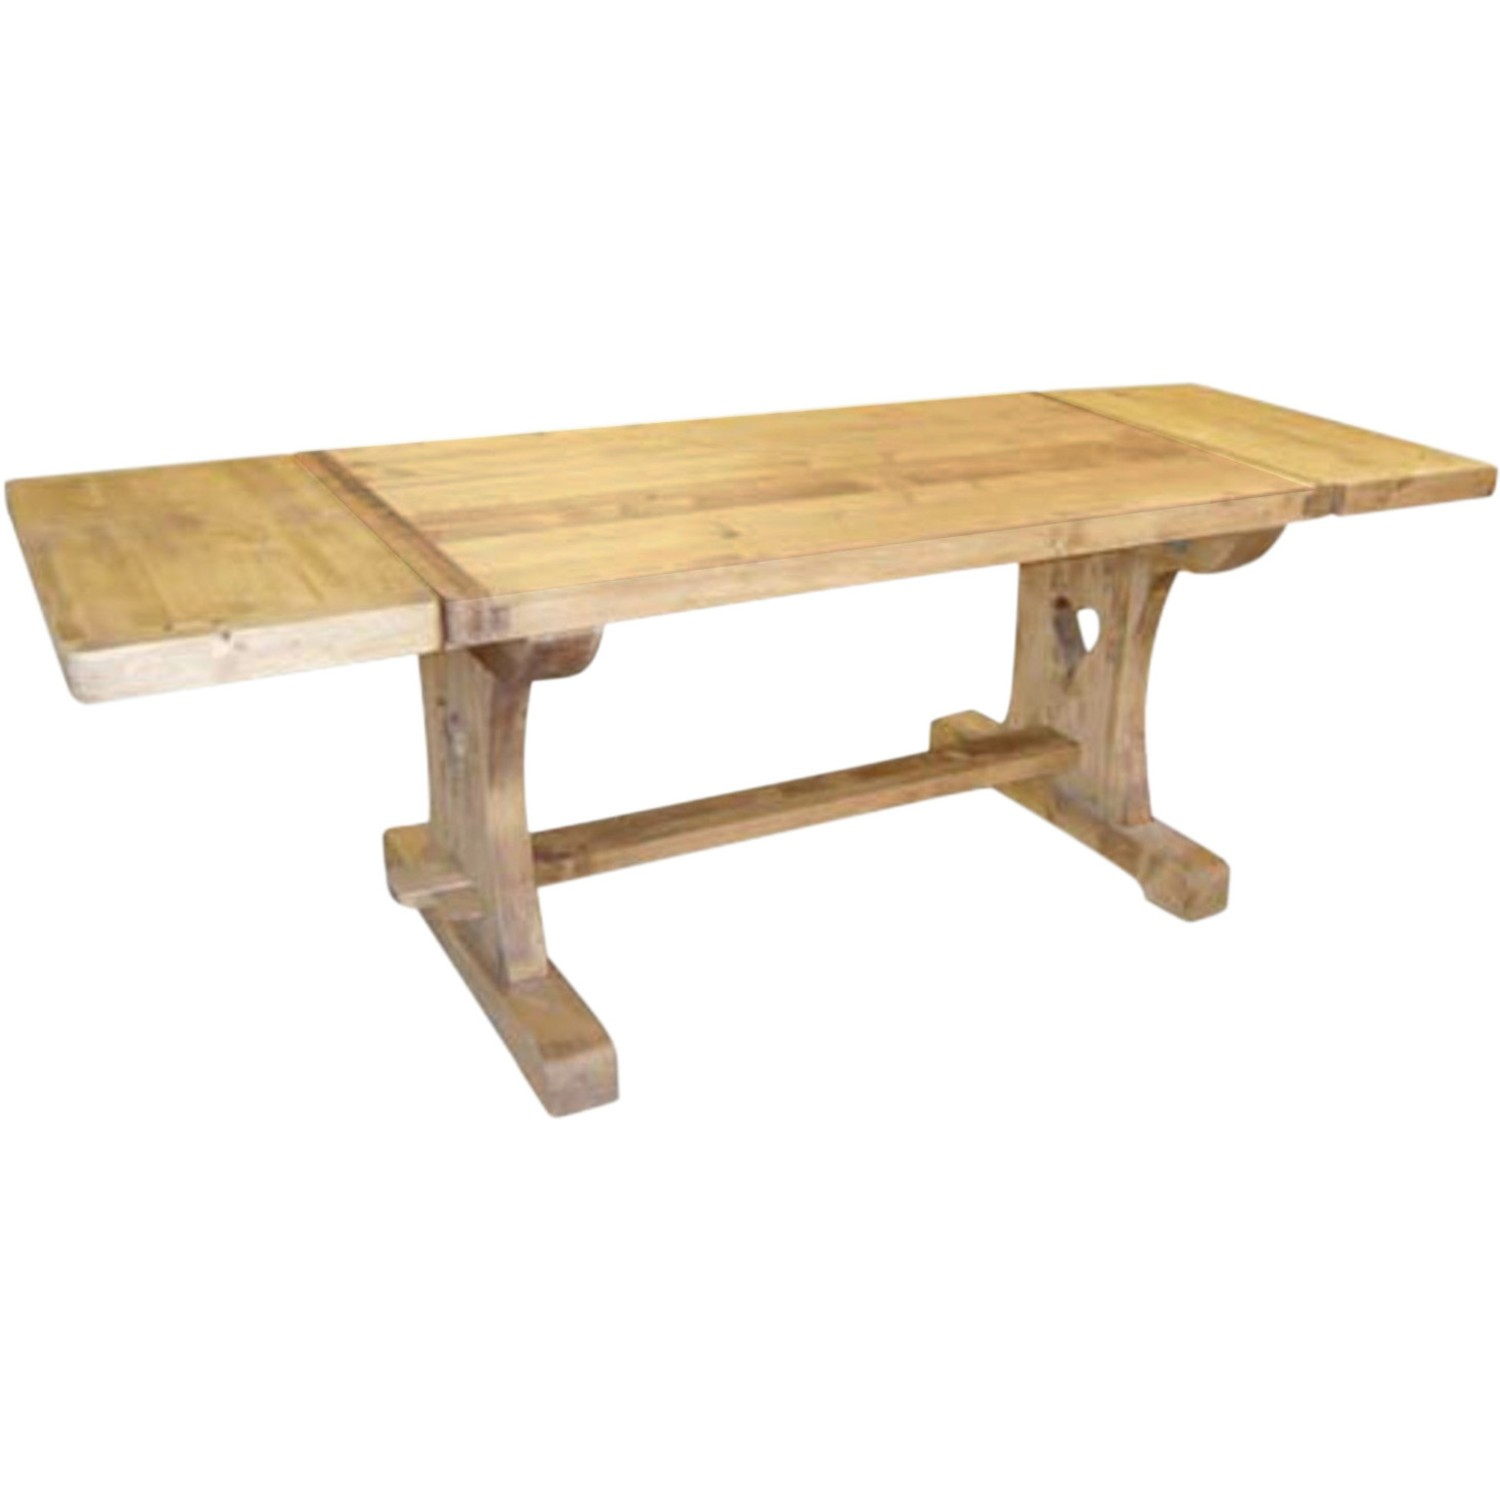 Table monast re coeur avec 2 allonges 40 cm for Petite table avec rallonge